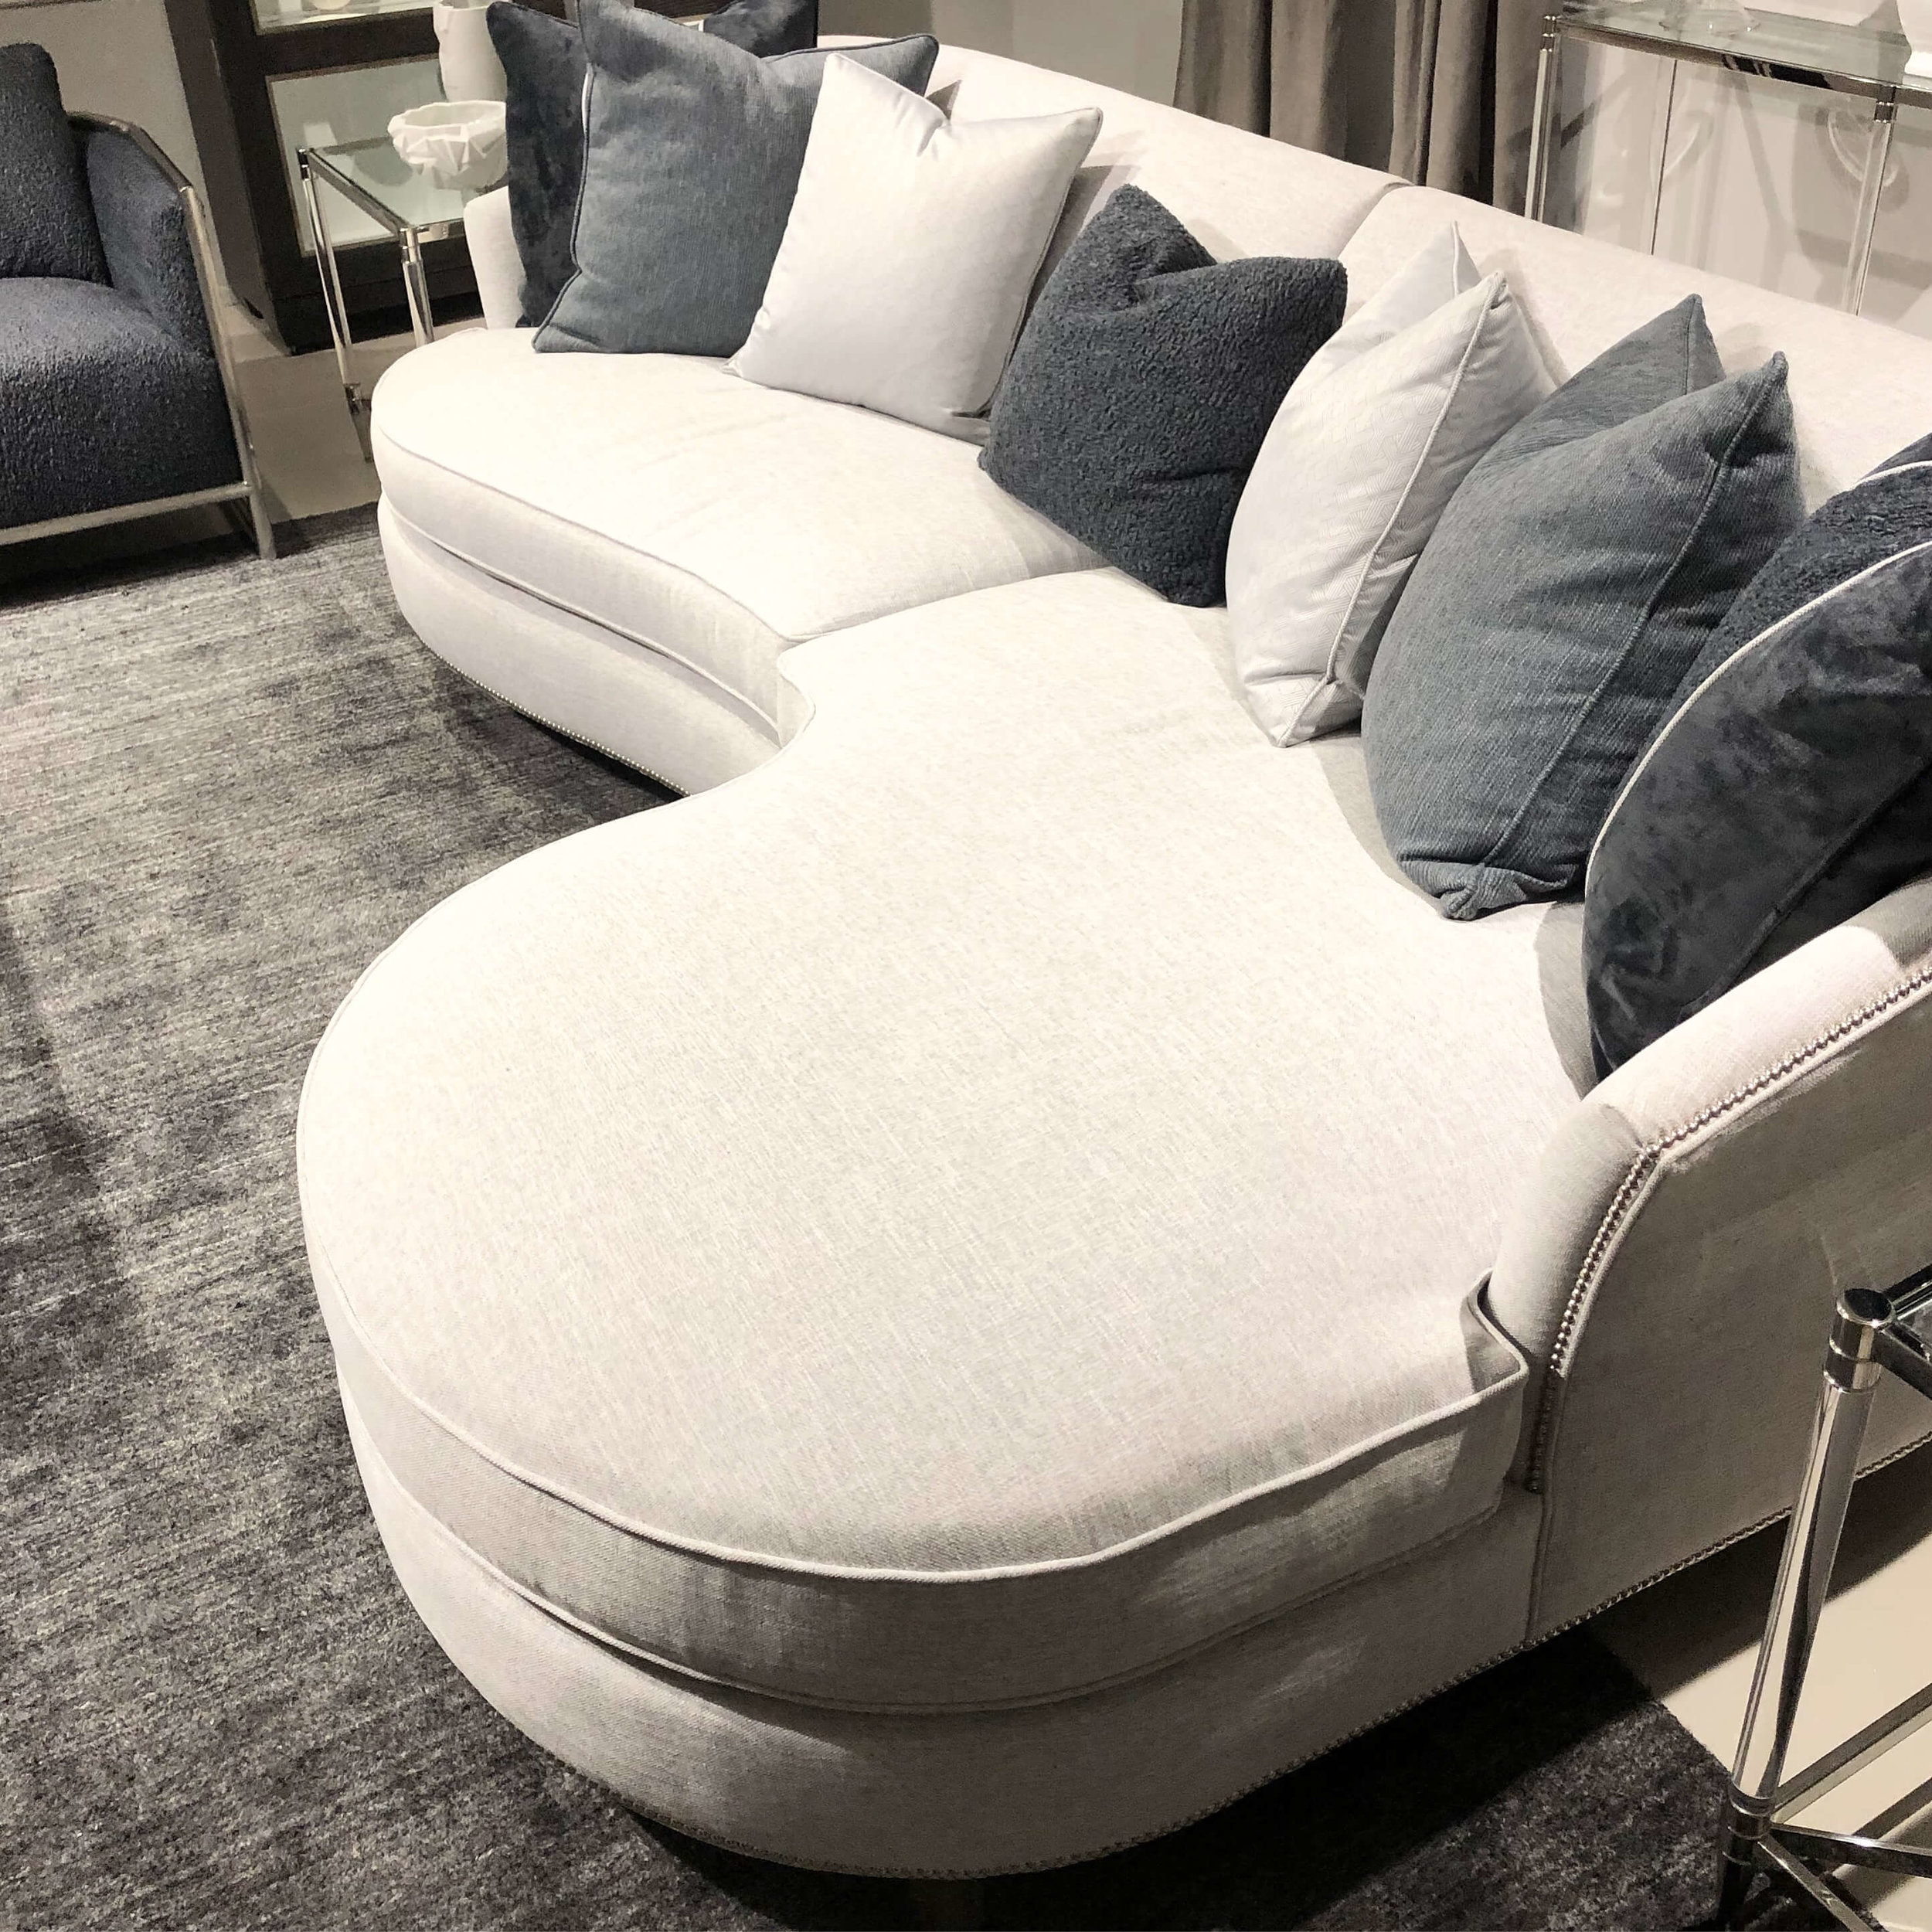 This sofa looks like the perfect place to snuggle and watch some Netflix, from Bernhardt